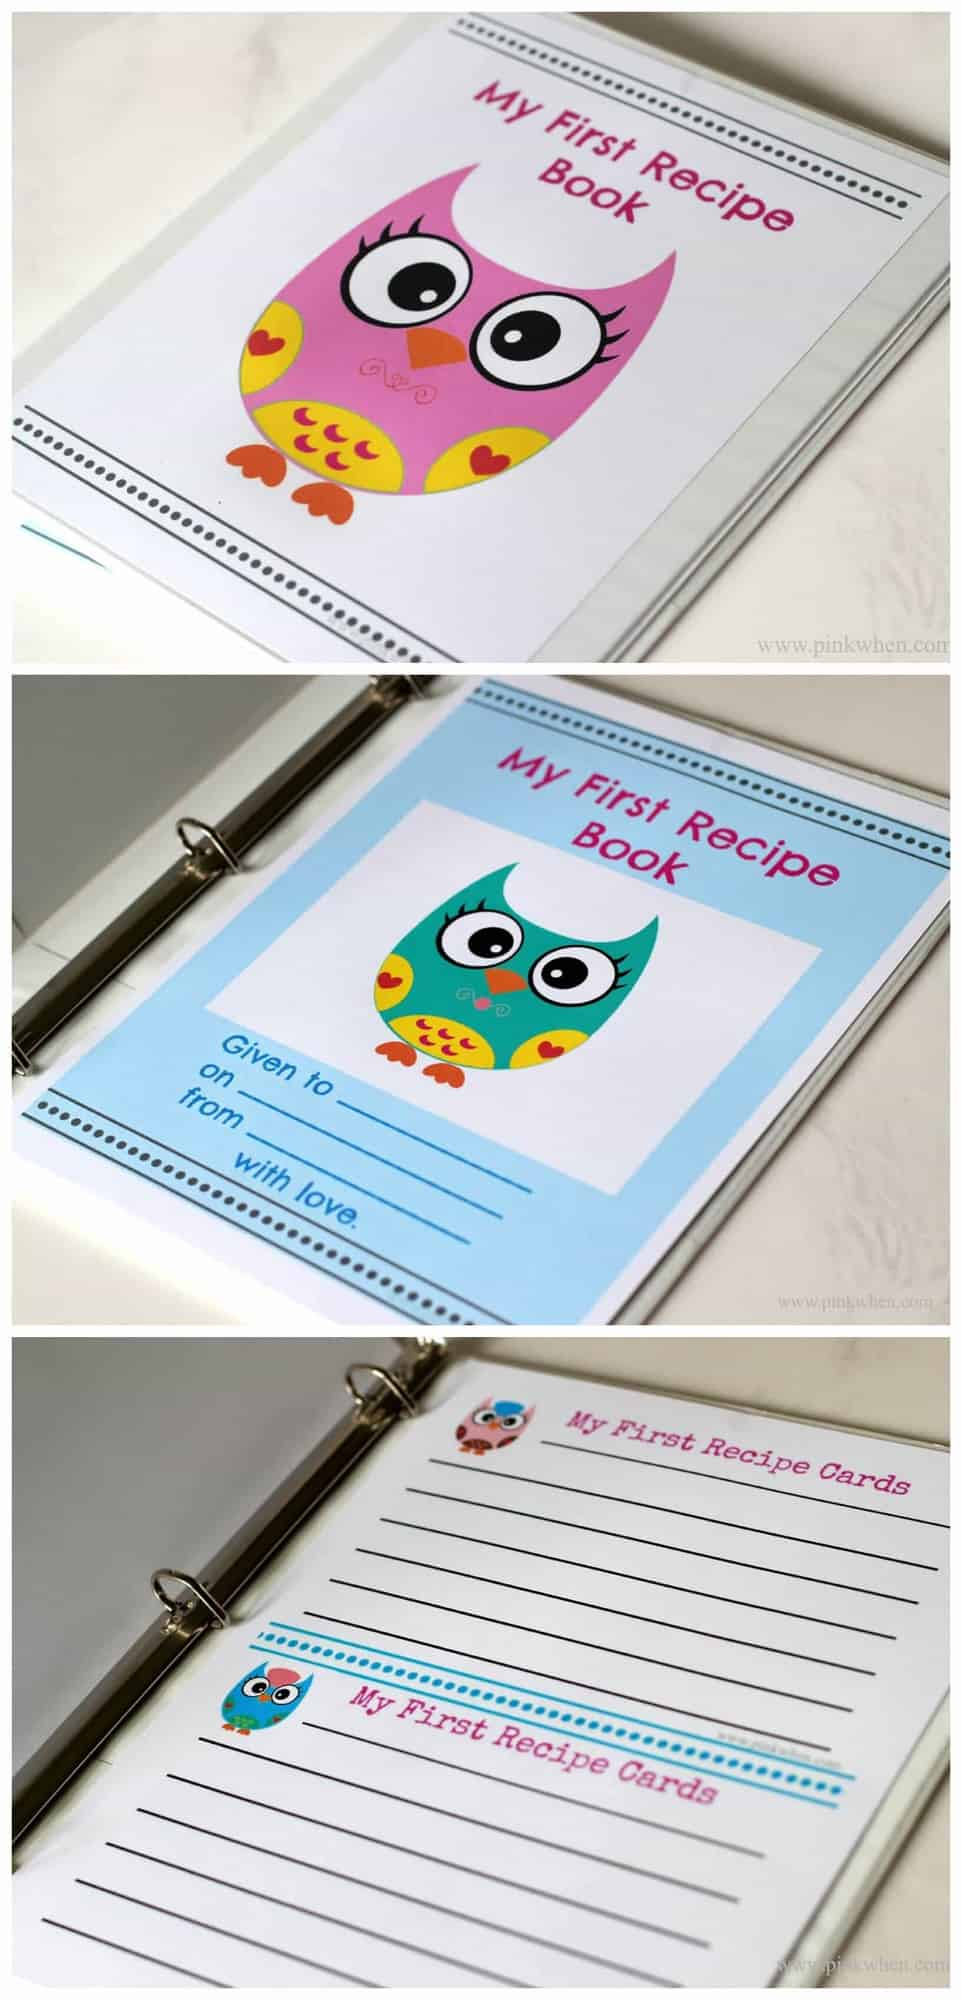 my first book report Registering with first book gives you access to brand new books for the children you serve.